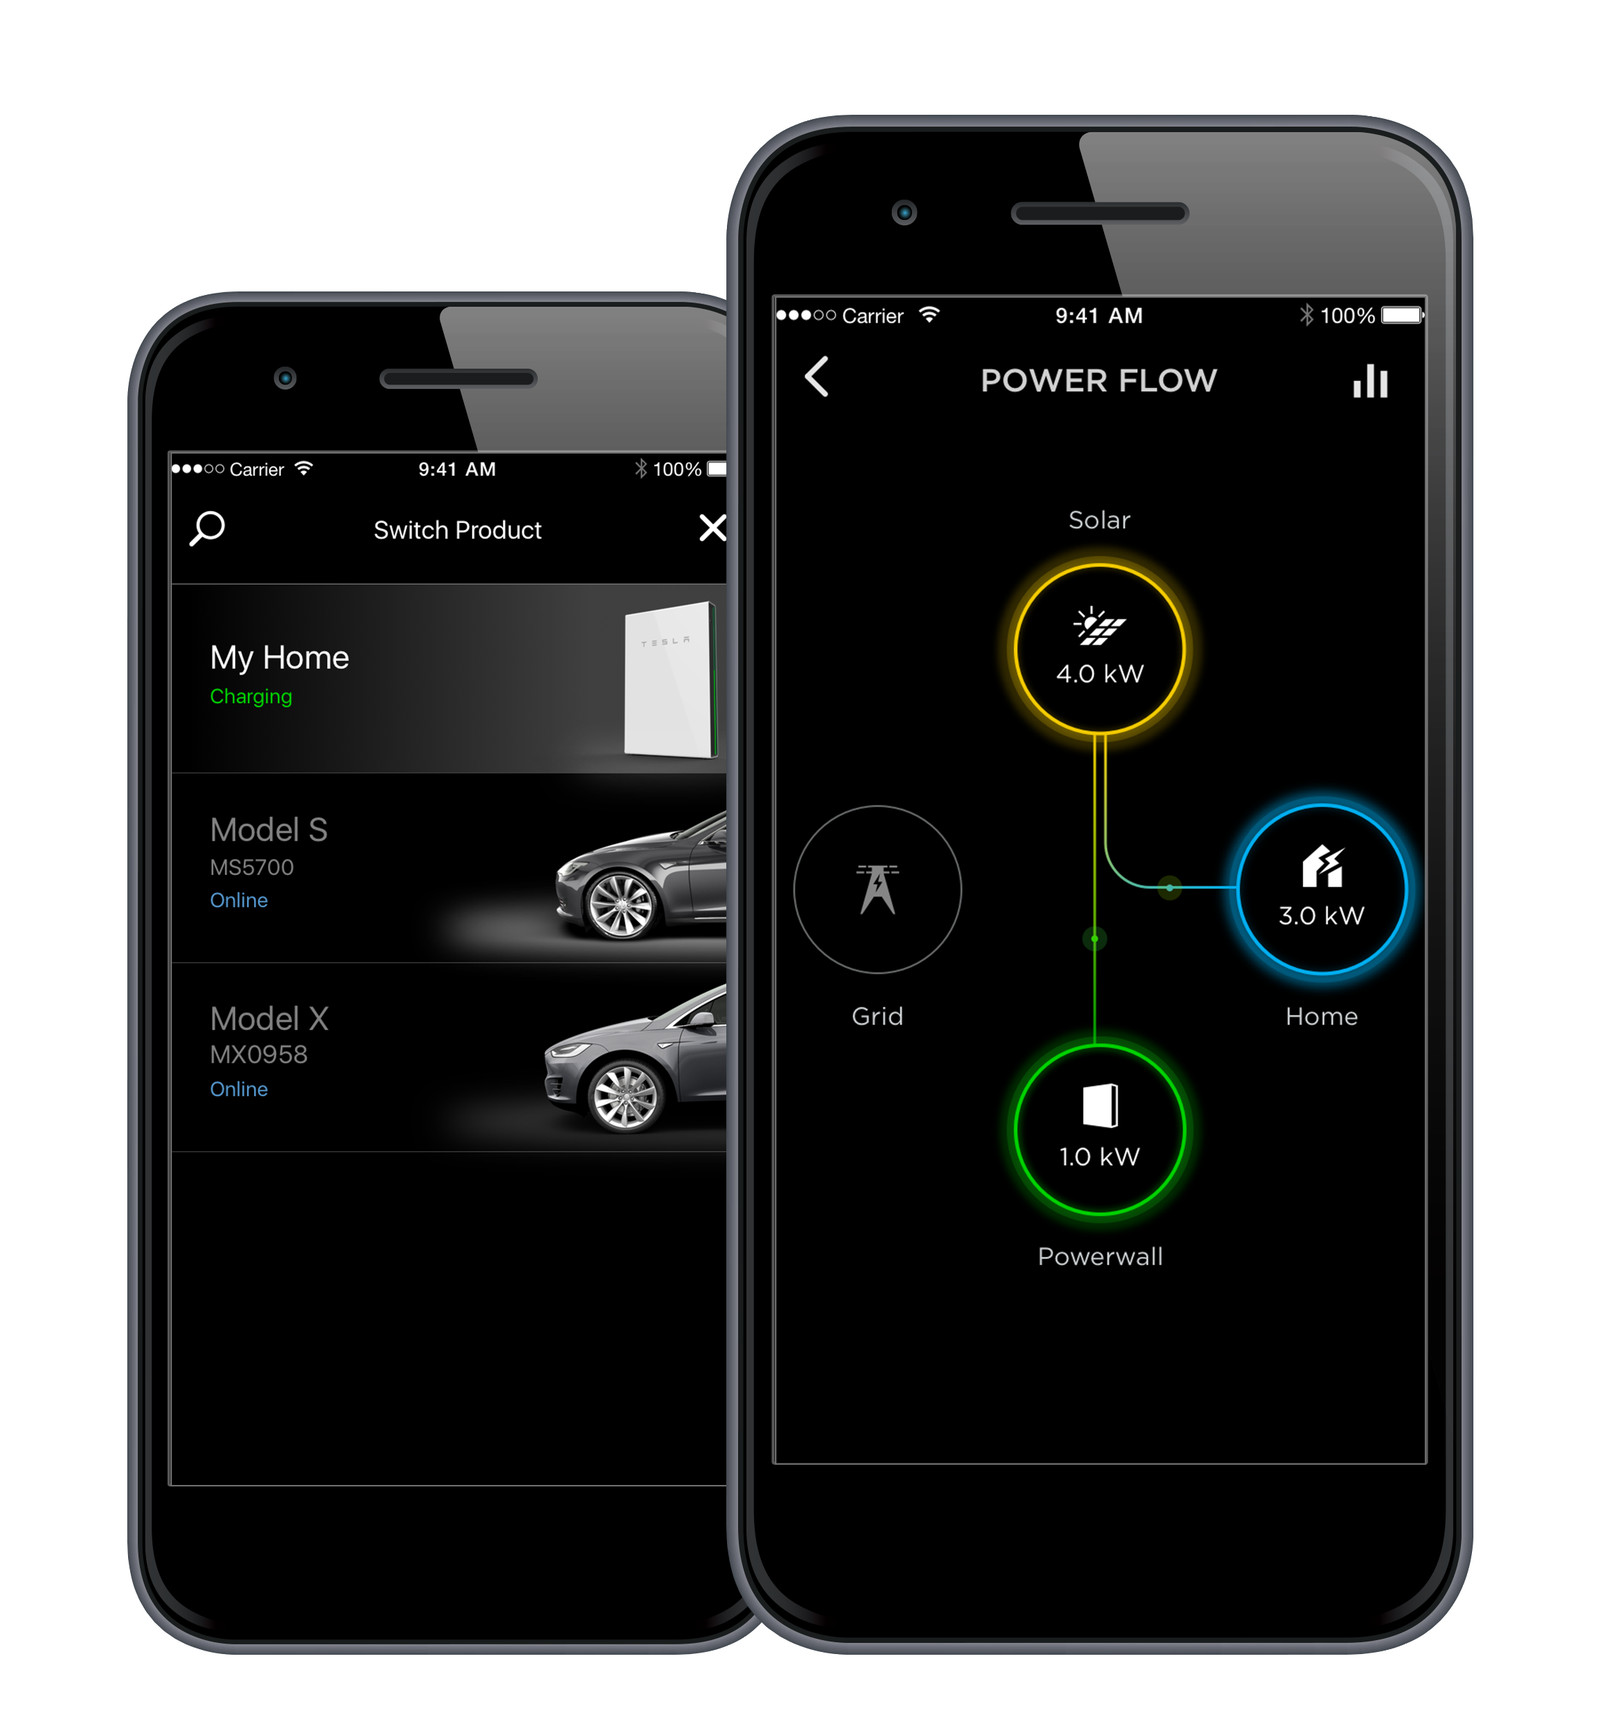 tesla-mobile-app-powerwall